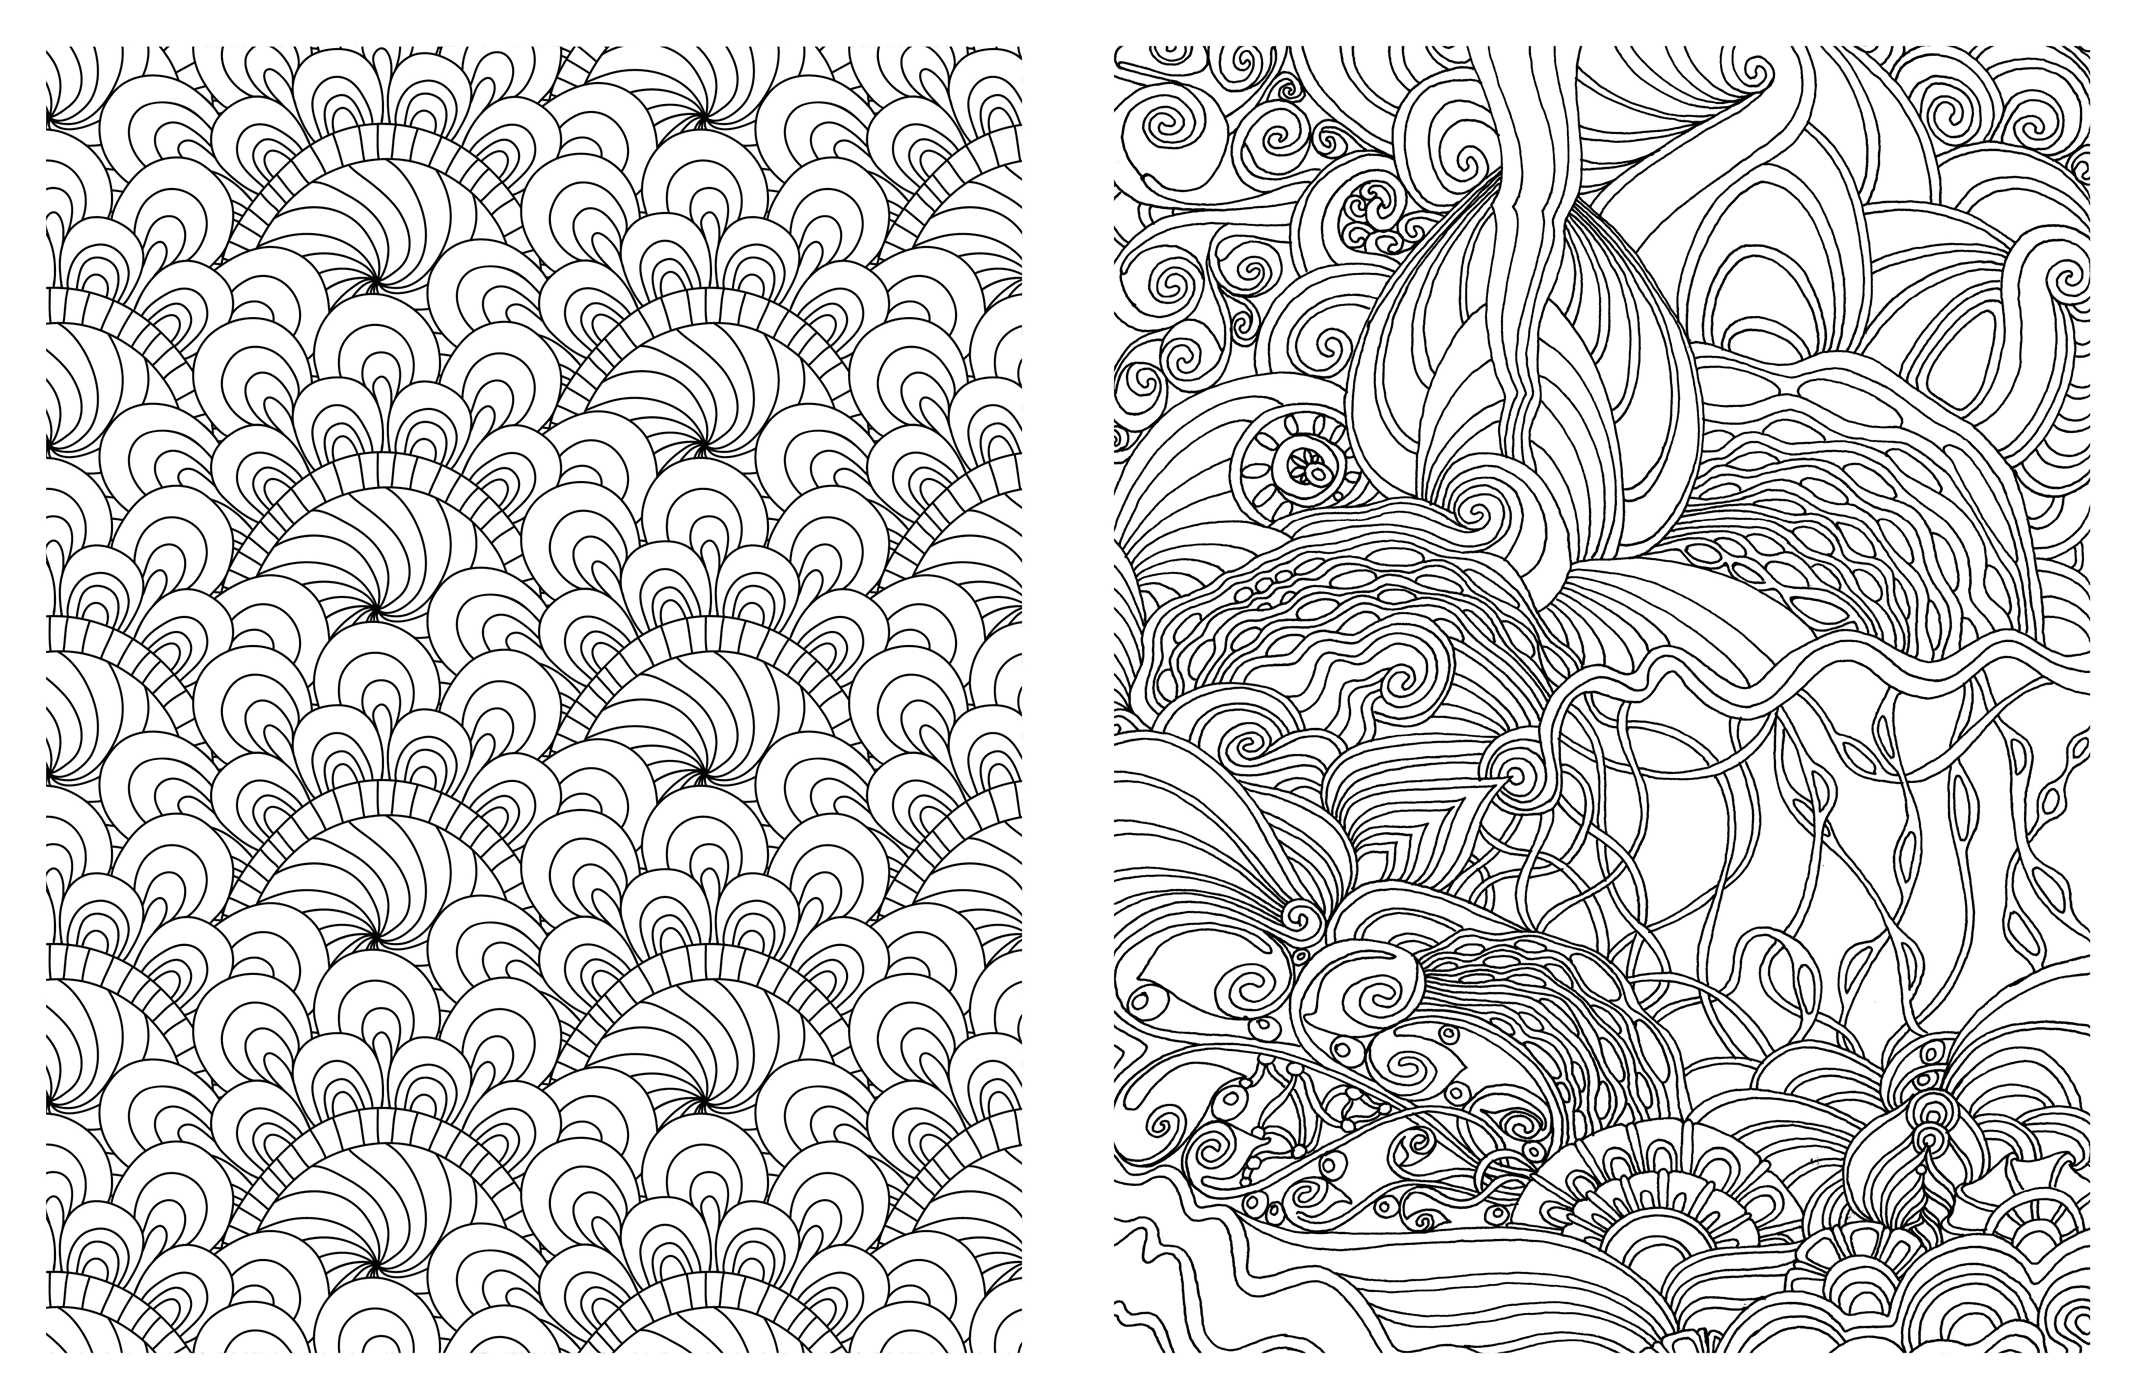 amazoncom posh adult coloring book soothing designs for fun relaxation posh coloring books 0050837348899 andrews mcmeel publishing books - Adults Coloring Books